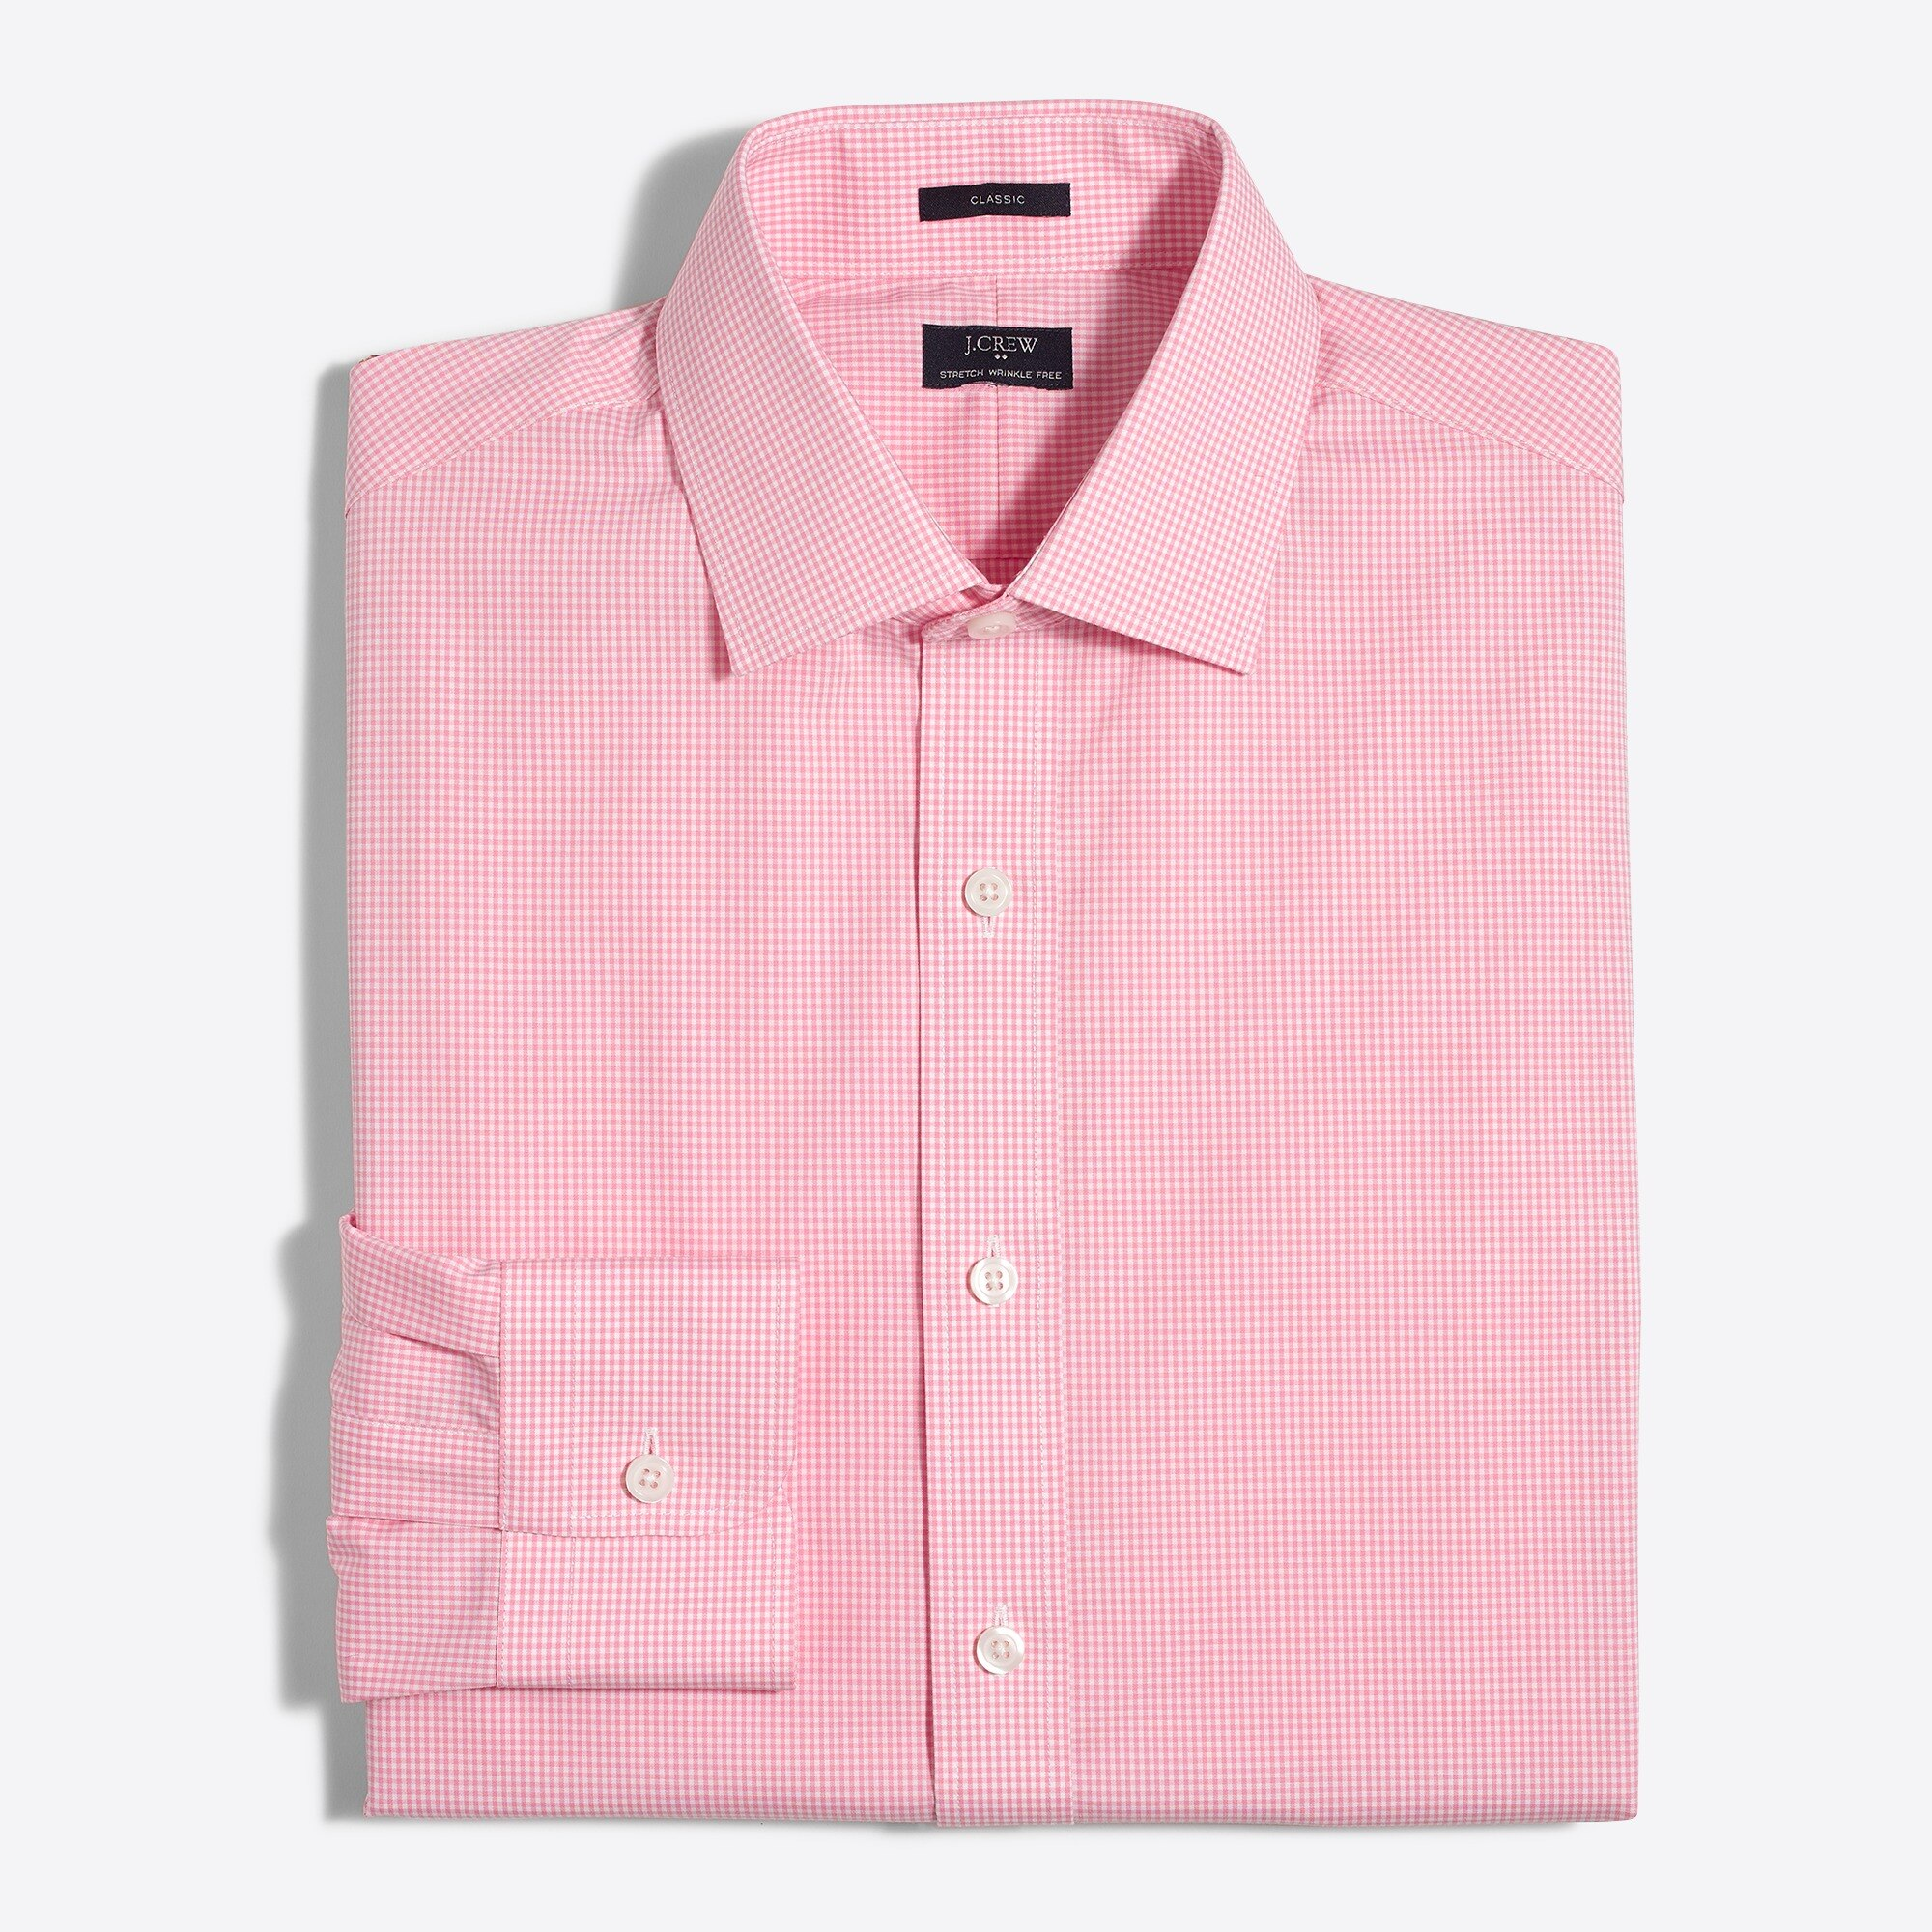 Thompson classic-fit flex wrinkle-free dress shirt